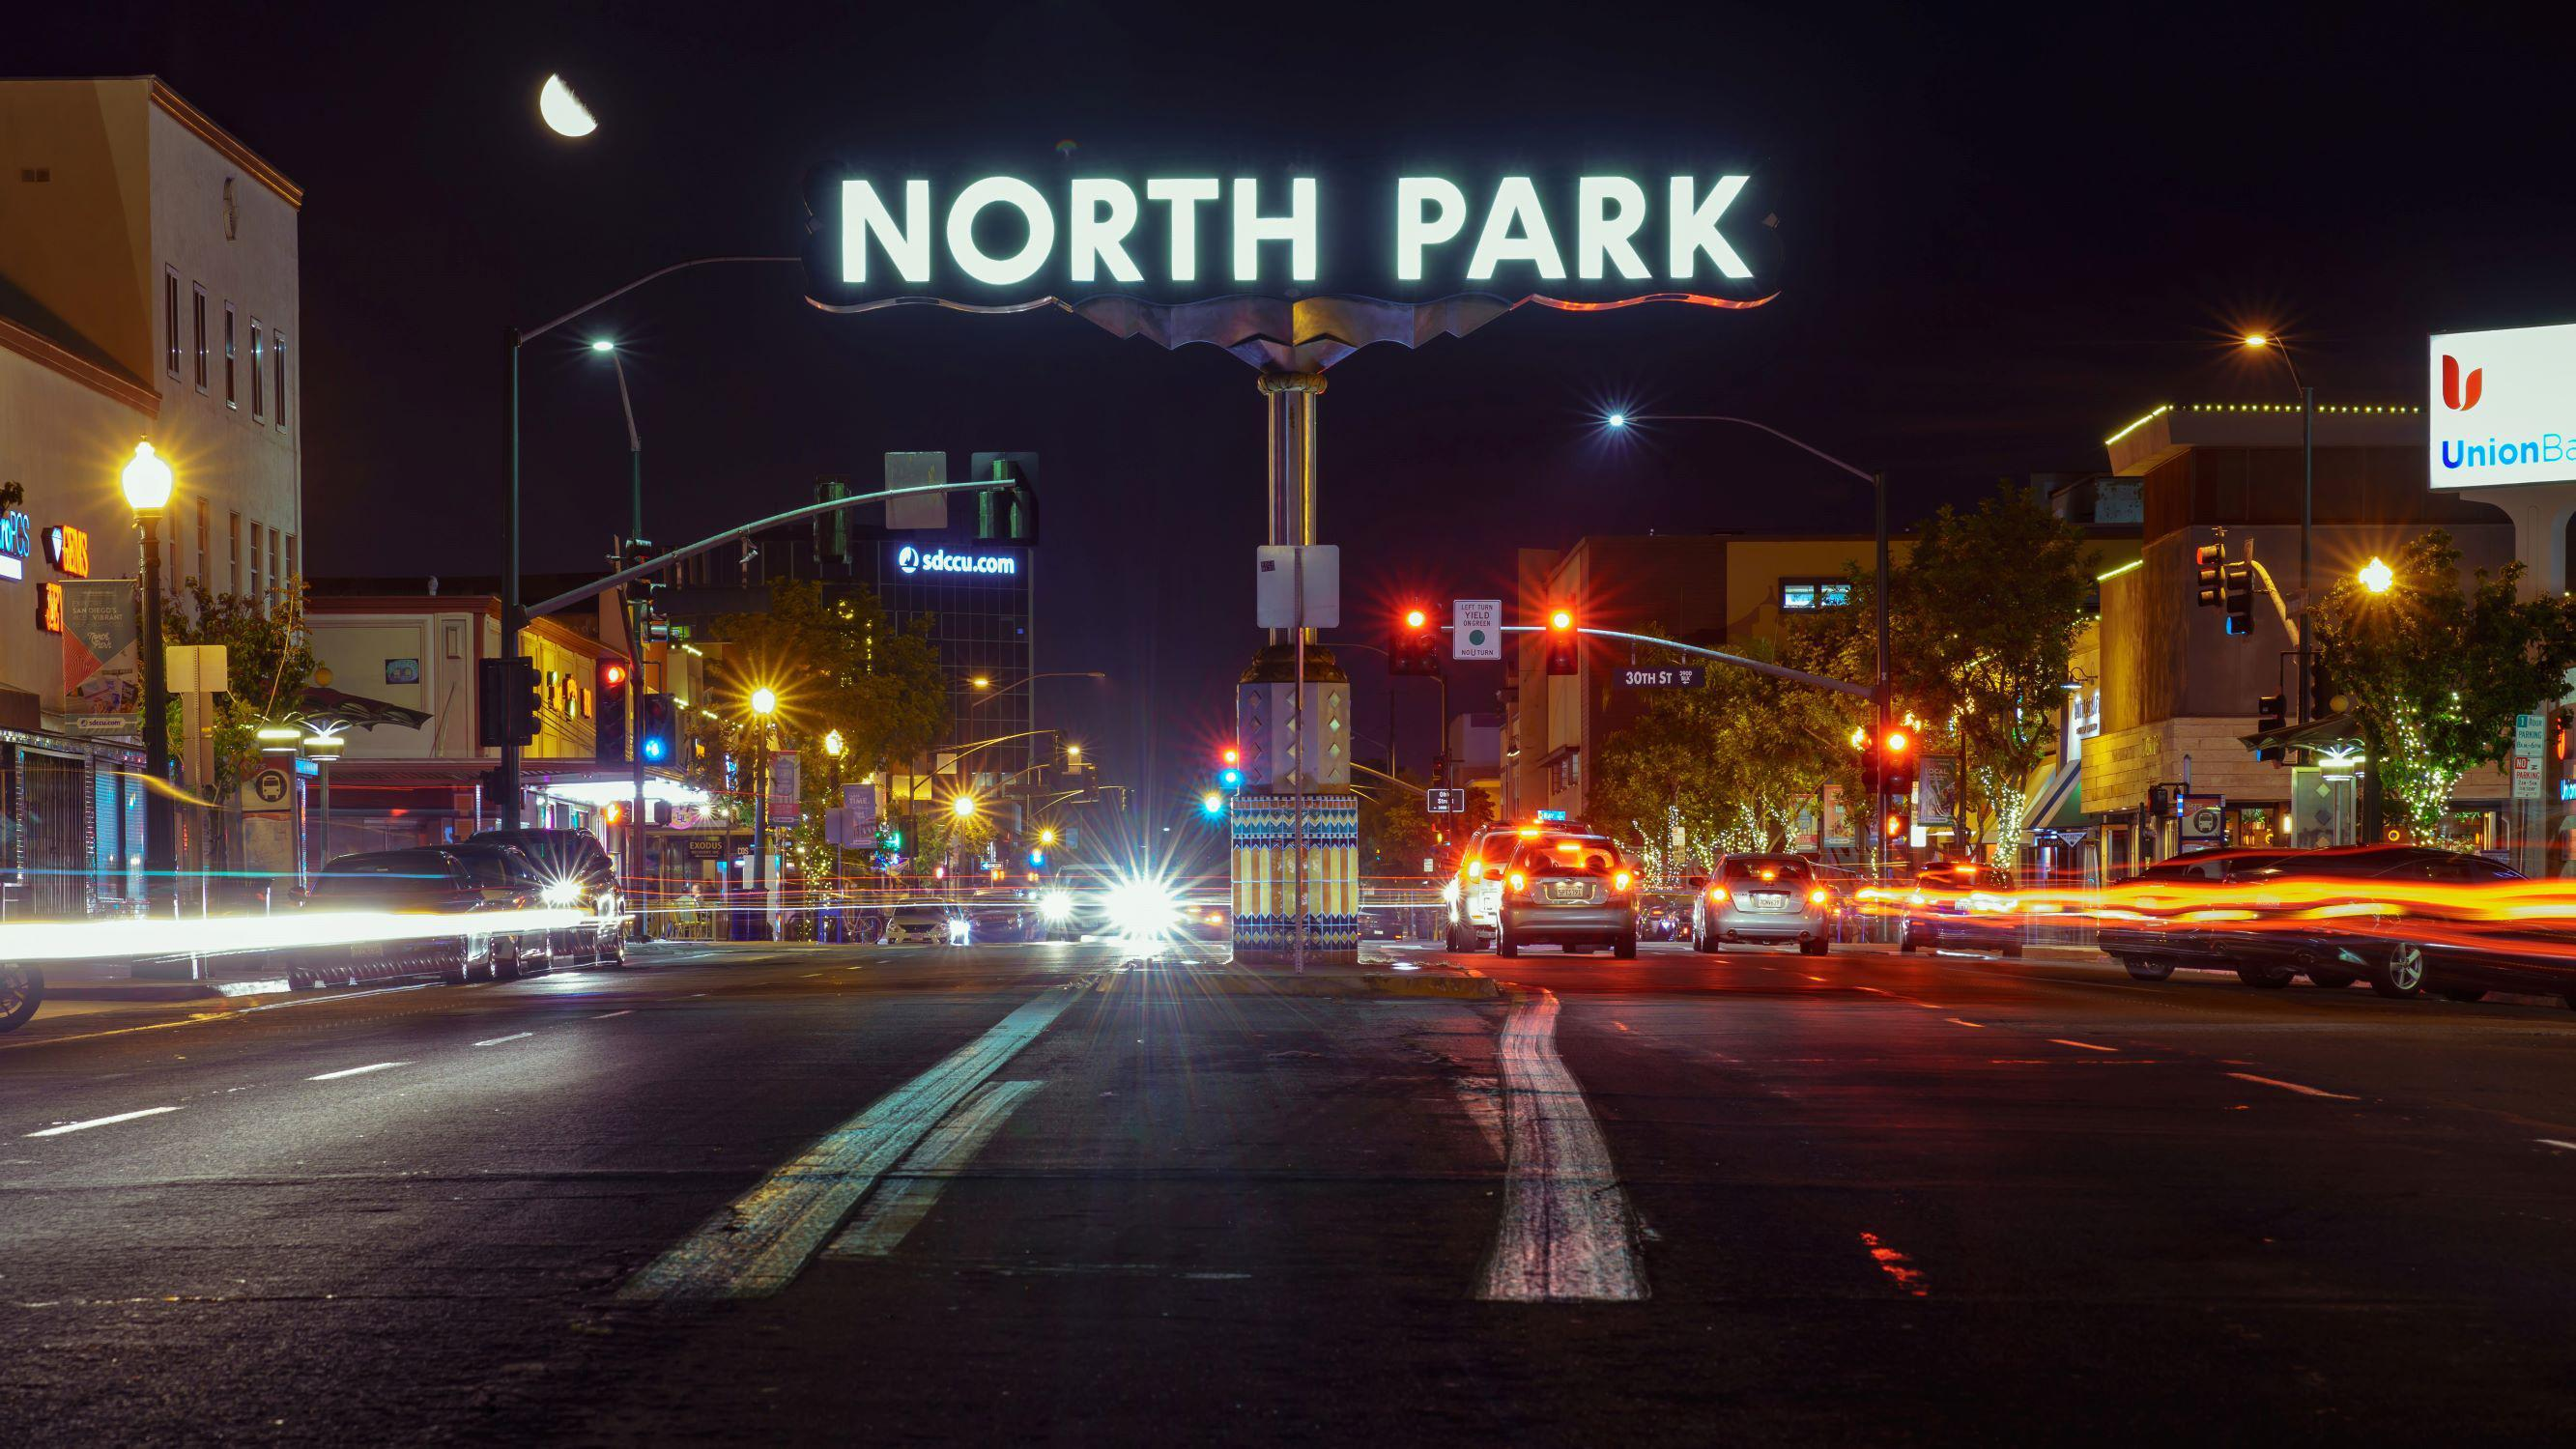 North Park San Diego at Night Digital Download by McClean Photography